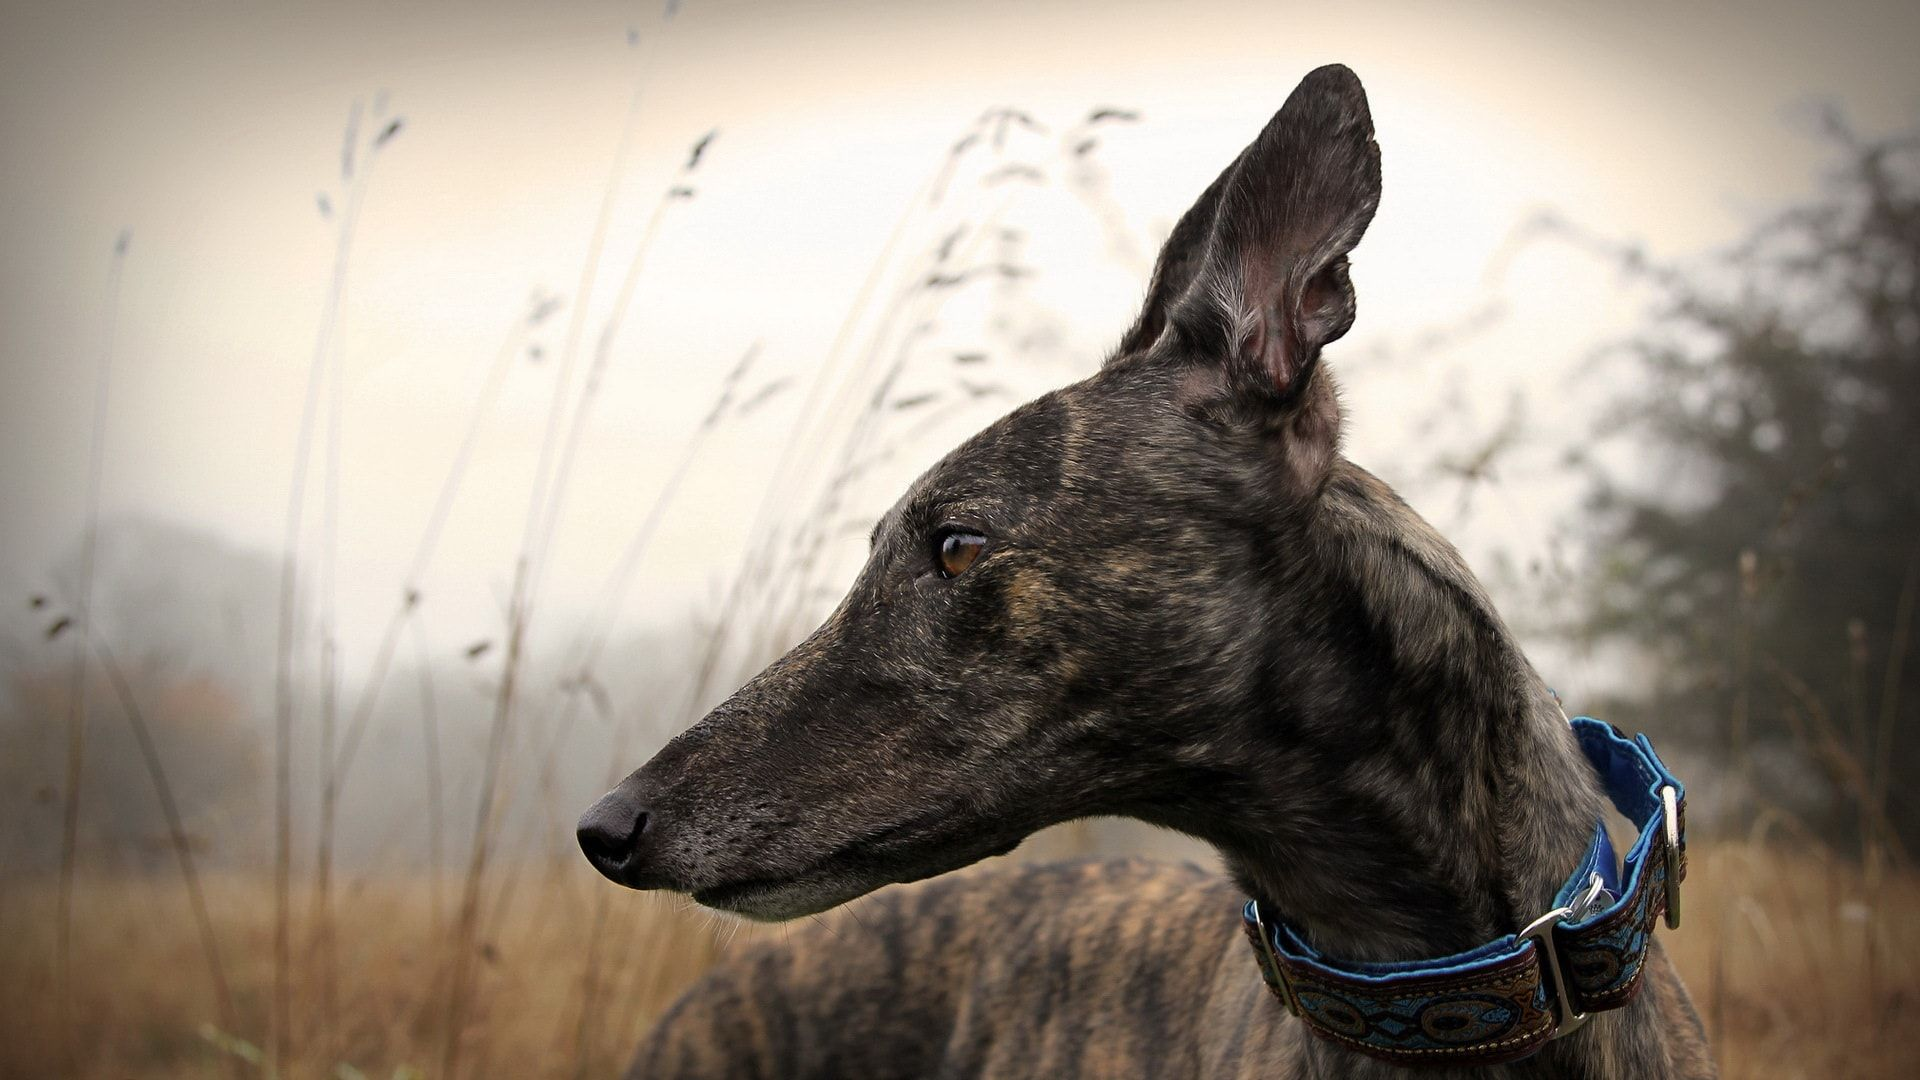 Greyhound Hd Greyhound Greyhound Pictures Grey Hound Dog